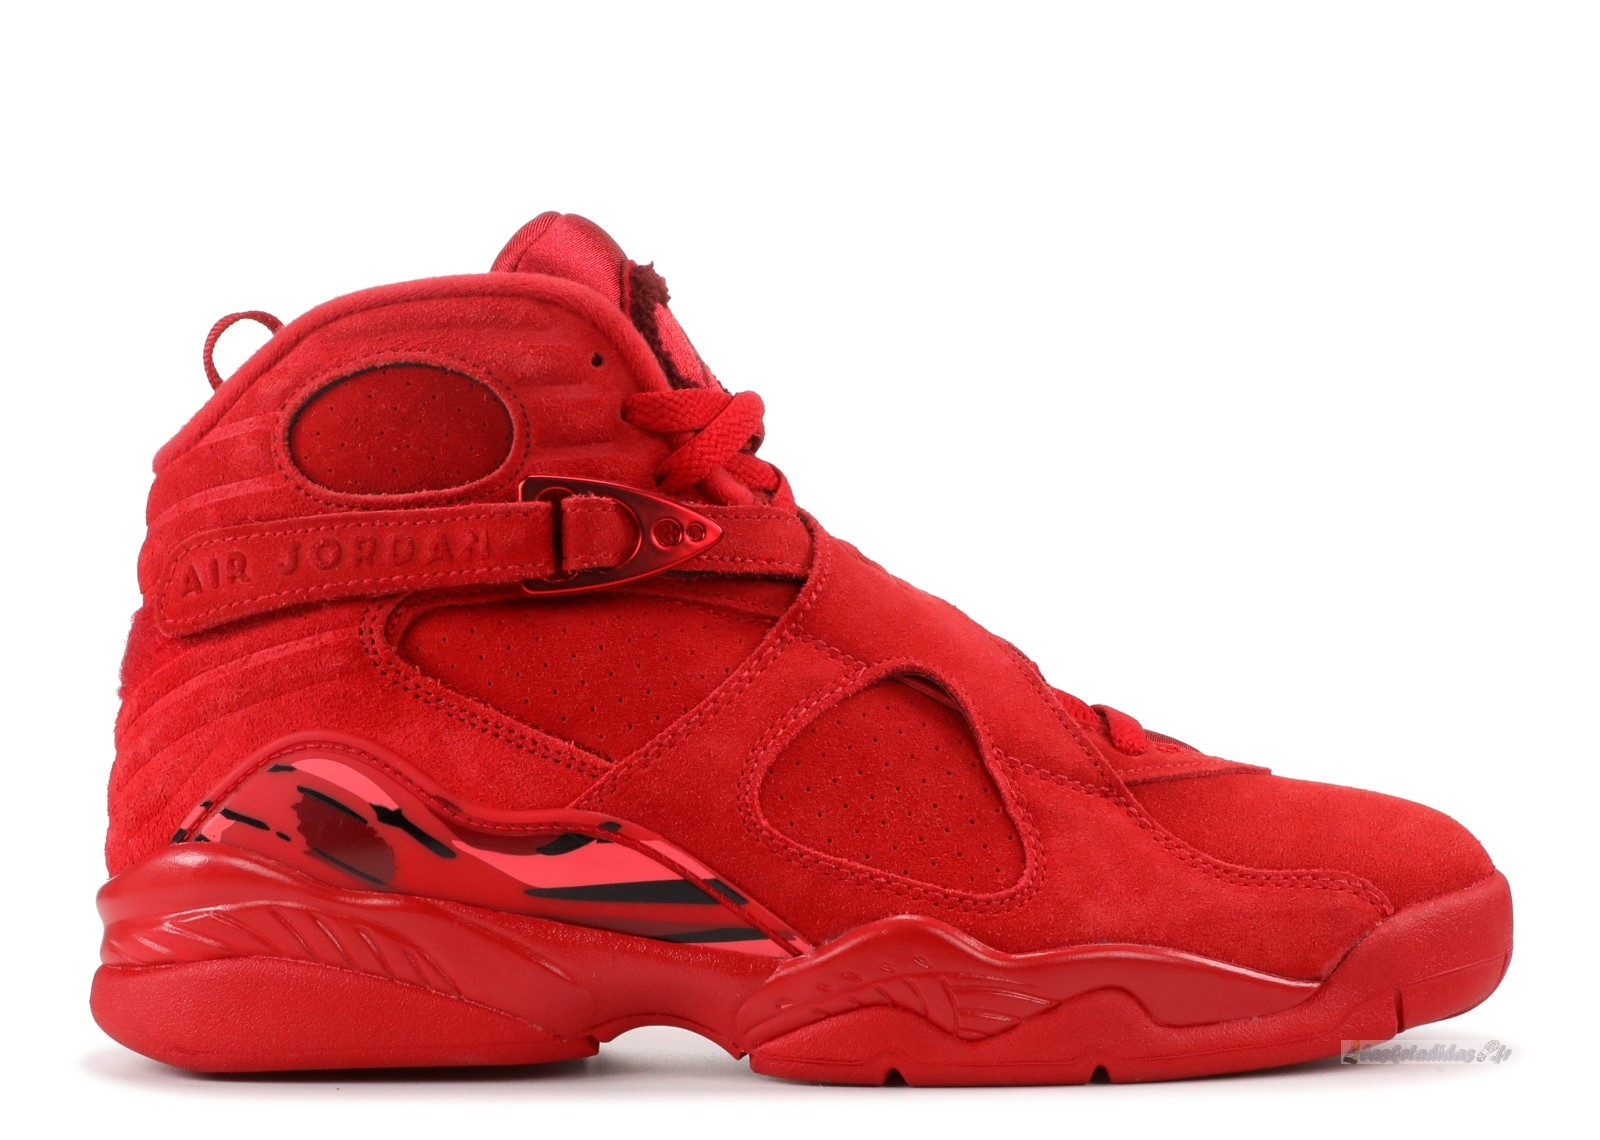 "Chaussure de Basket Air Jordan 8 Femme Vday ""Valentines Day"" Rouge (aq2449-614)"